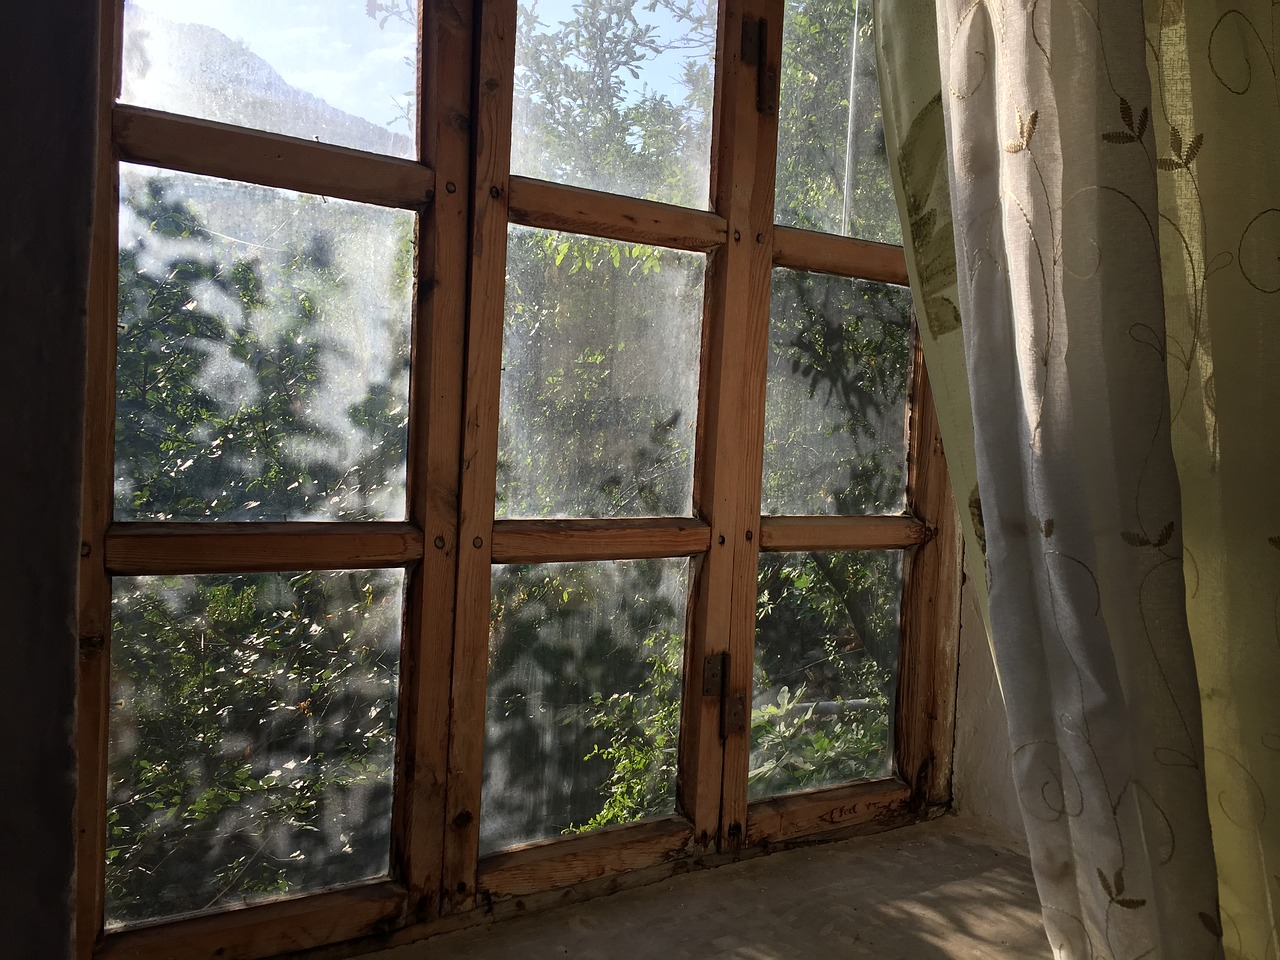 Should I Replace All The Windows At Once?